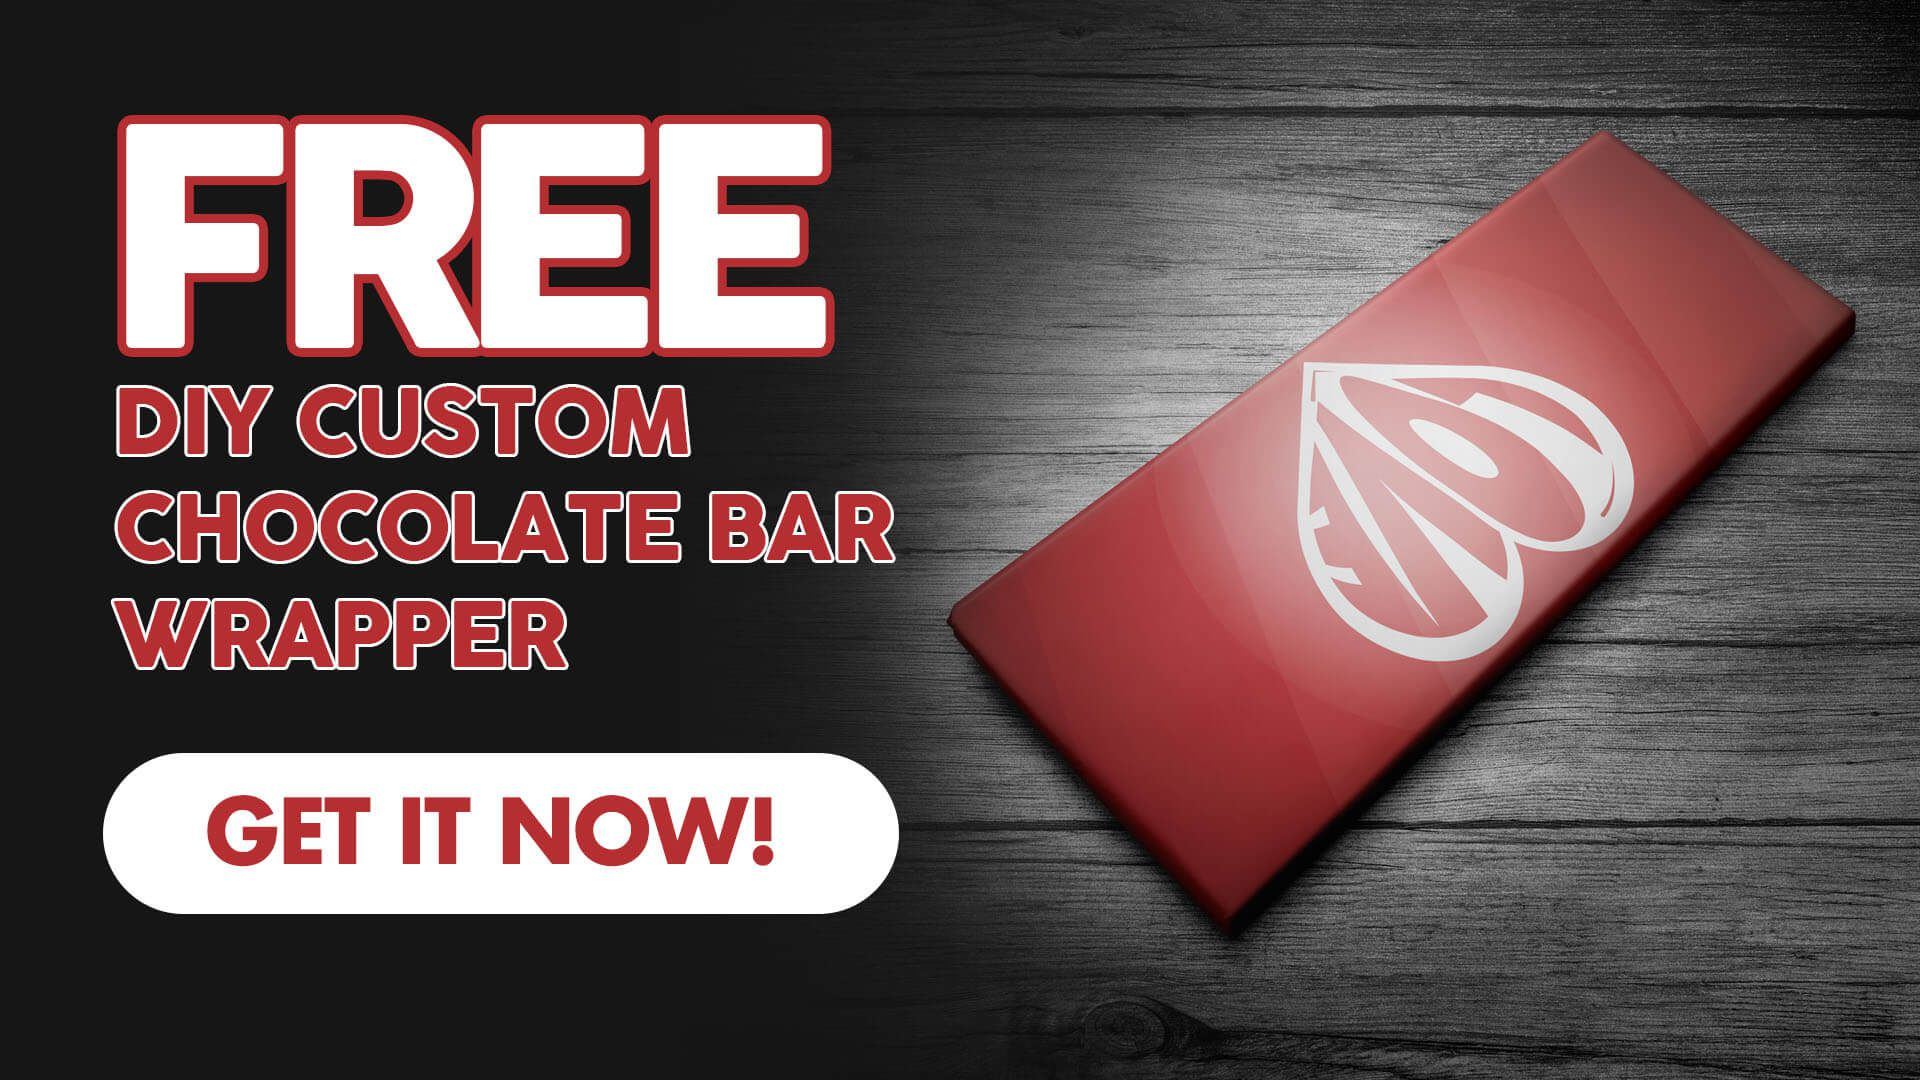 006 Remarkable Free Candy Bar Wrapper Template Pdf Highest Quality Full